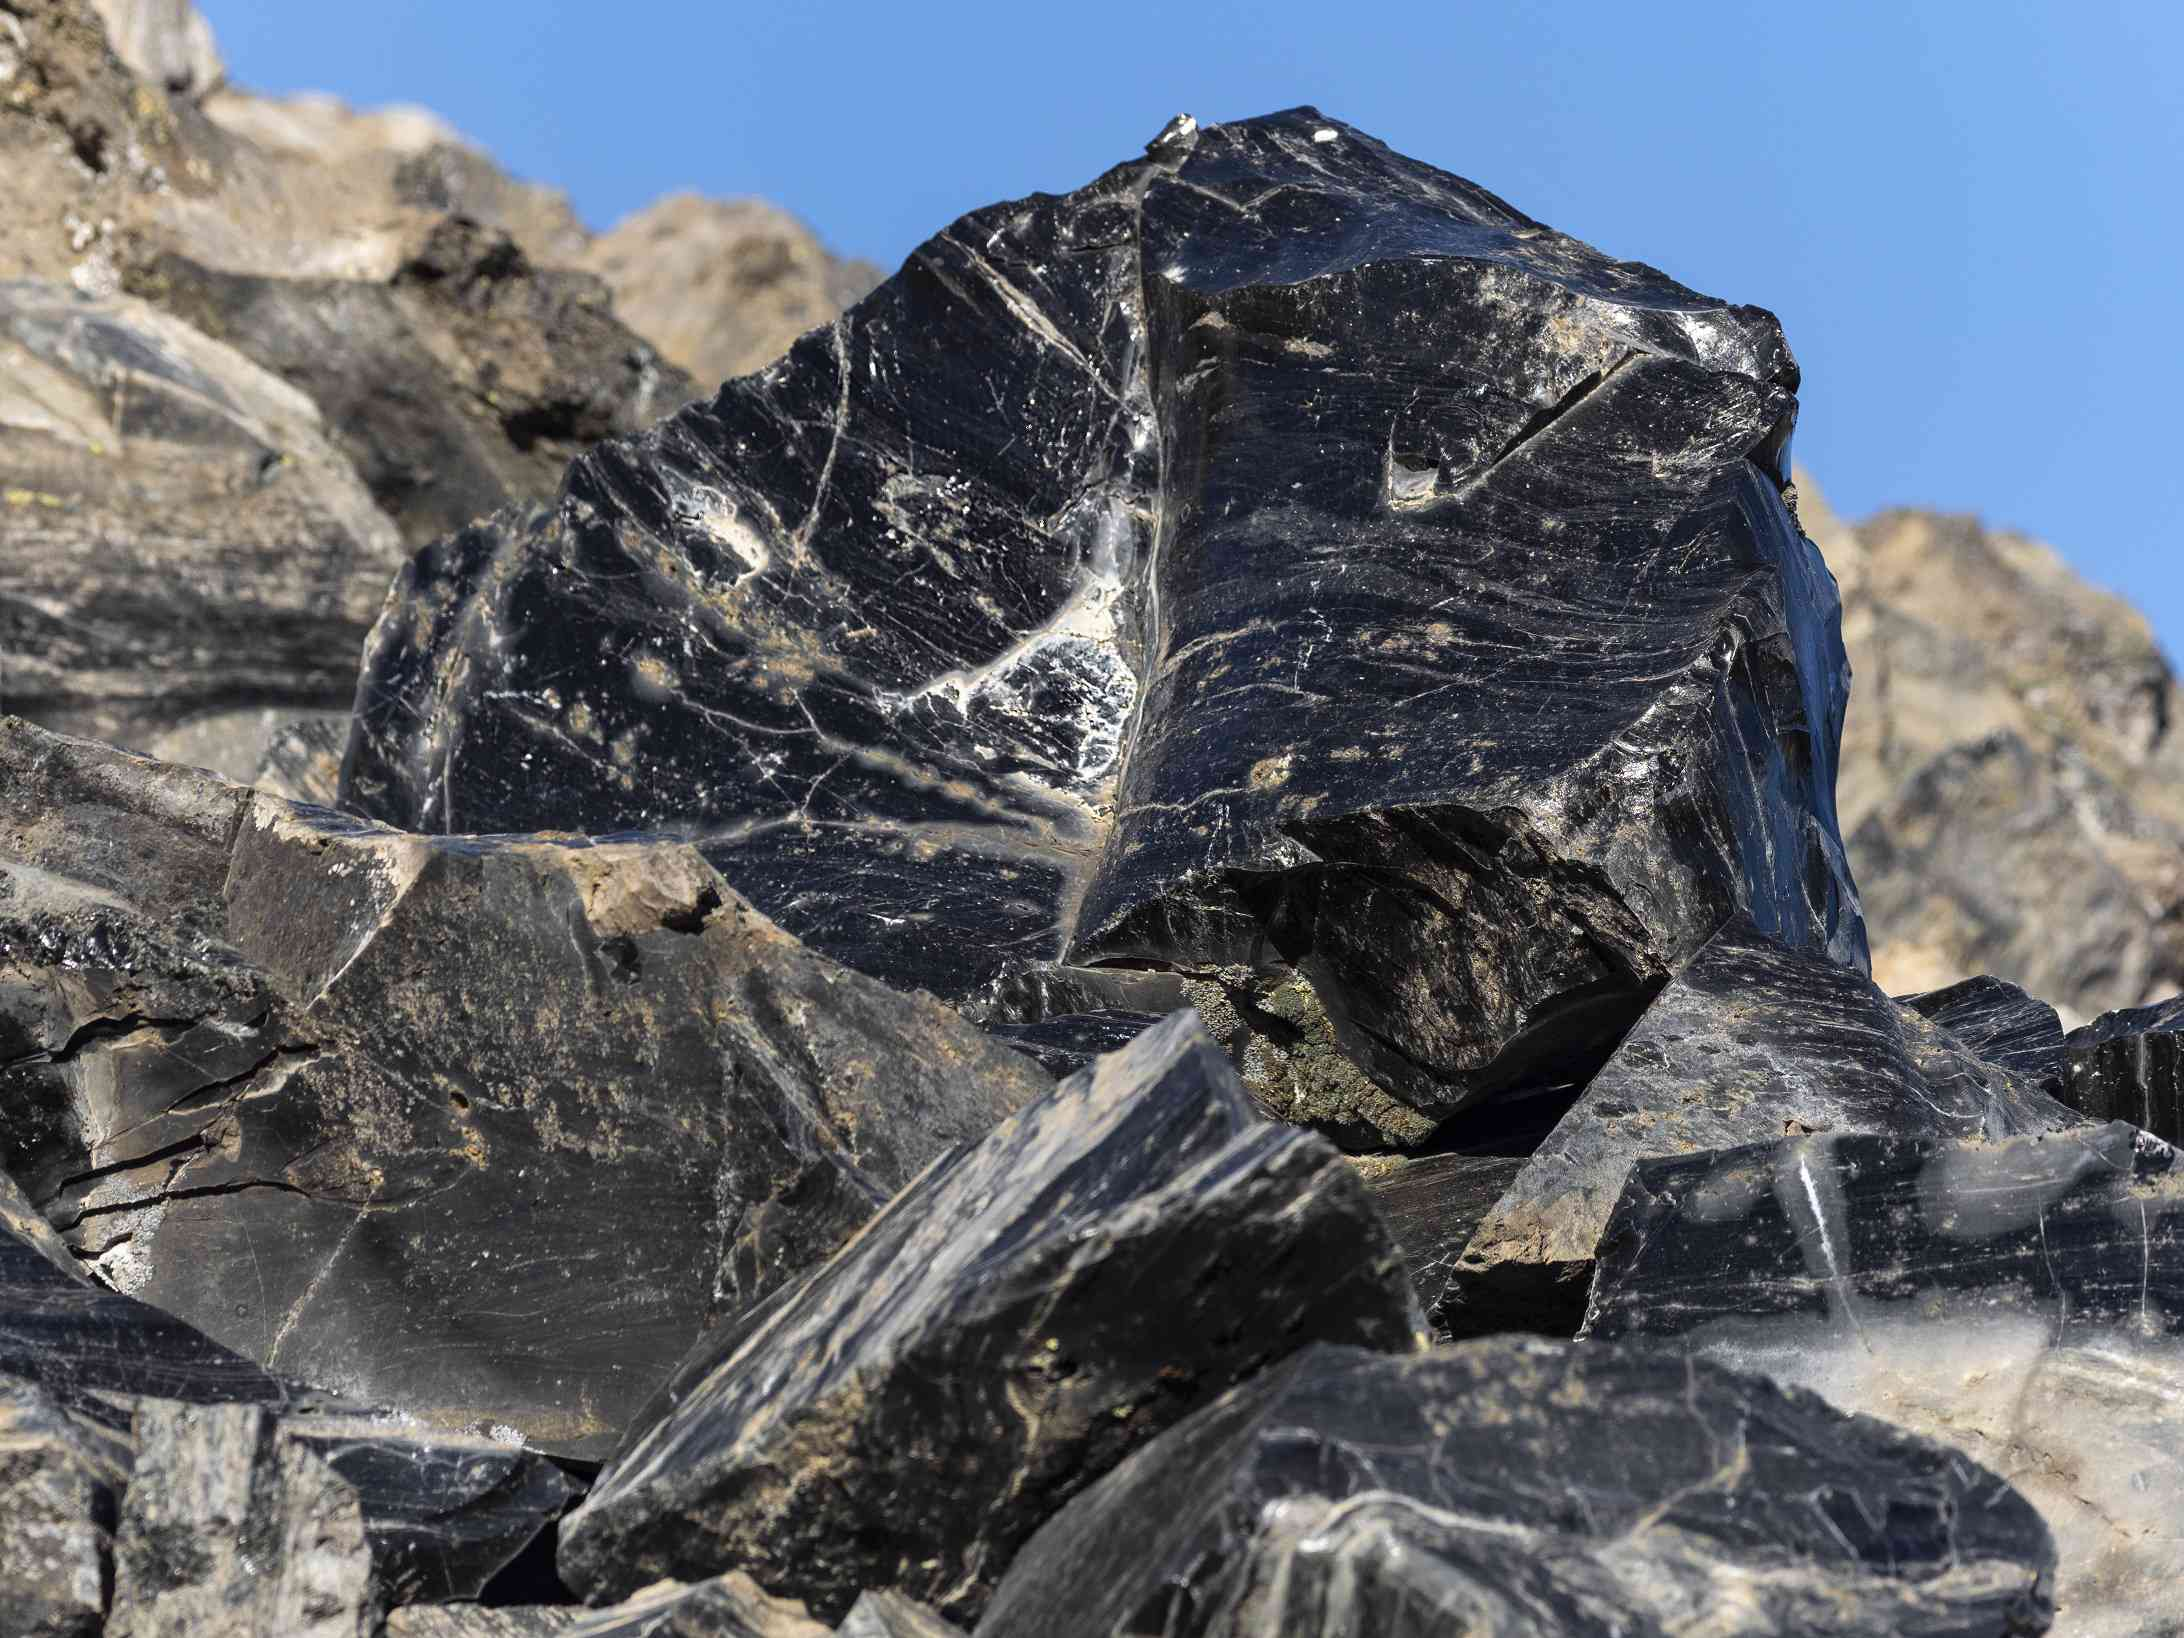 Large obsidian rock formations.